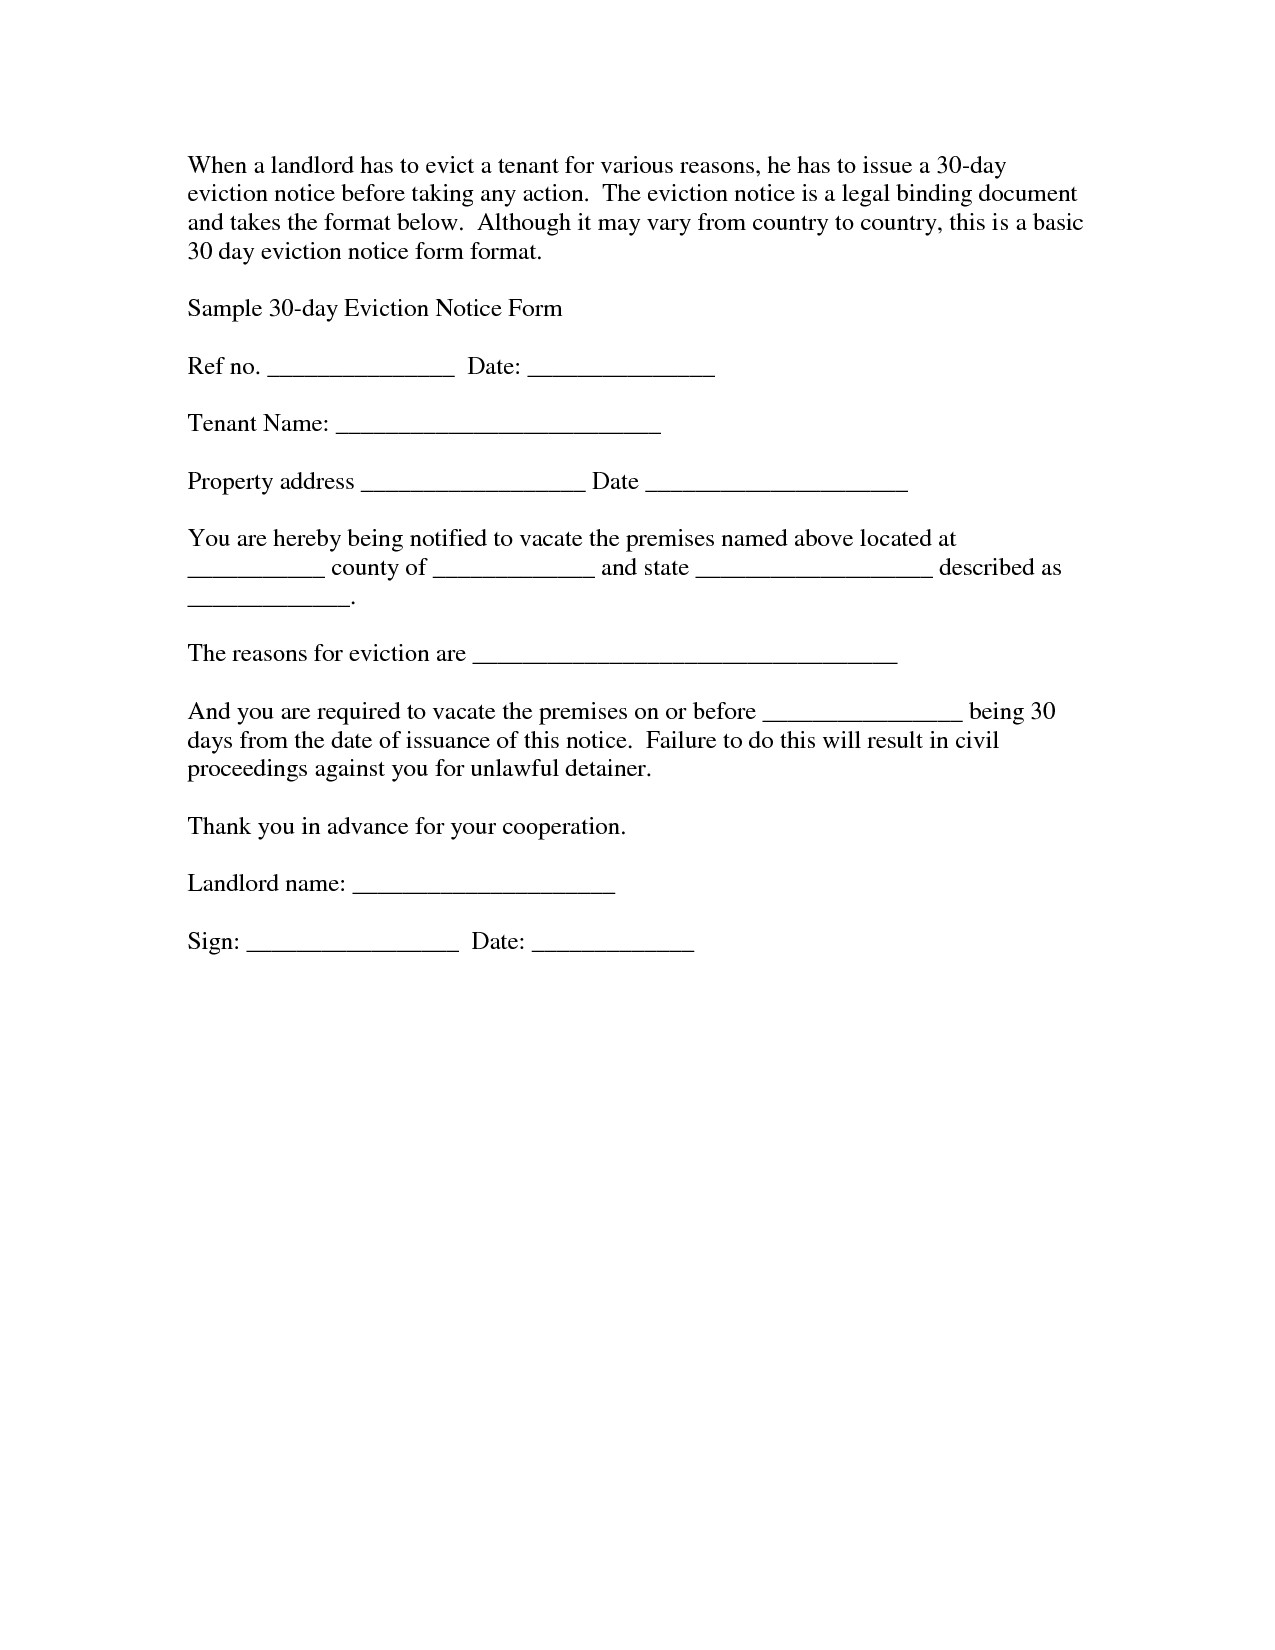 eviction notice letter template Collection-Eviction Notices Fresh Three Day Eviction Notice form top An Eviction Notice Can Be 5-i